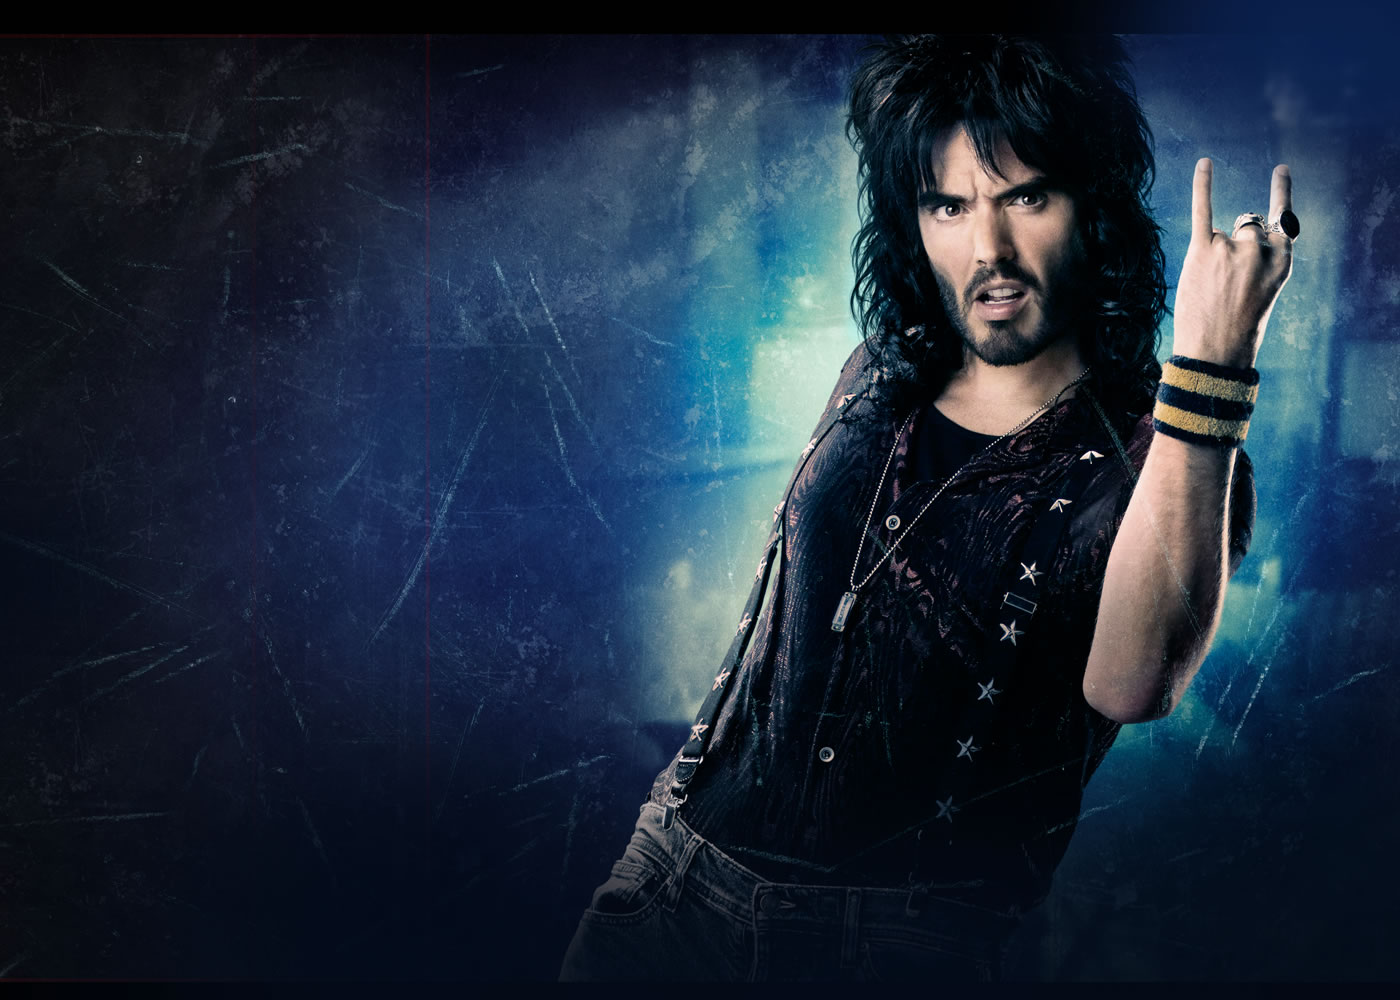 rock of ages: the motion picture images lonny hd wallpaper and